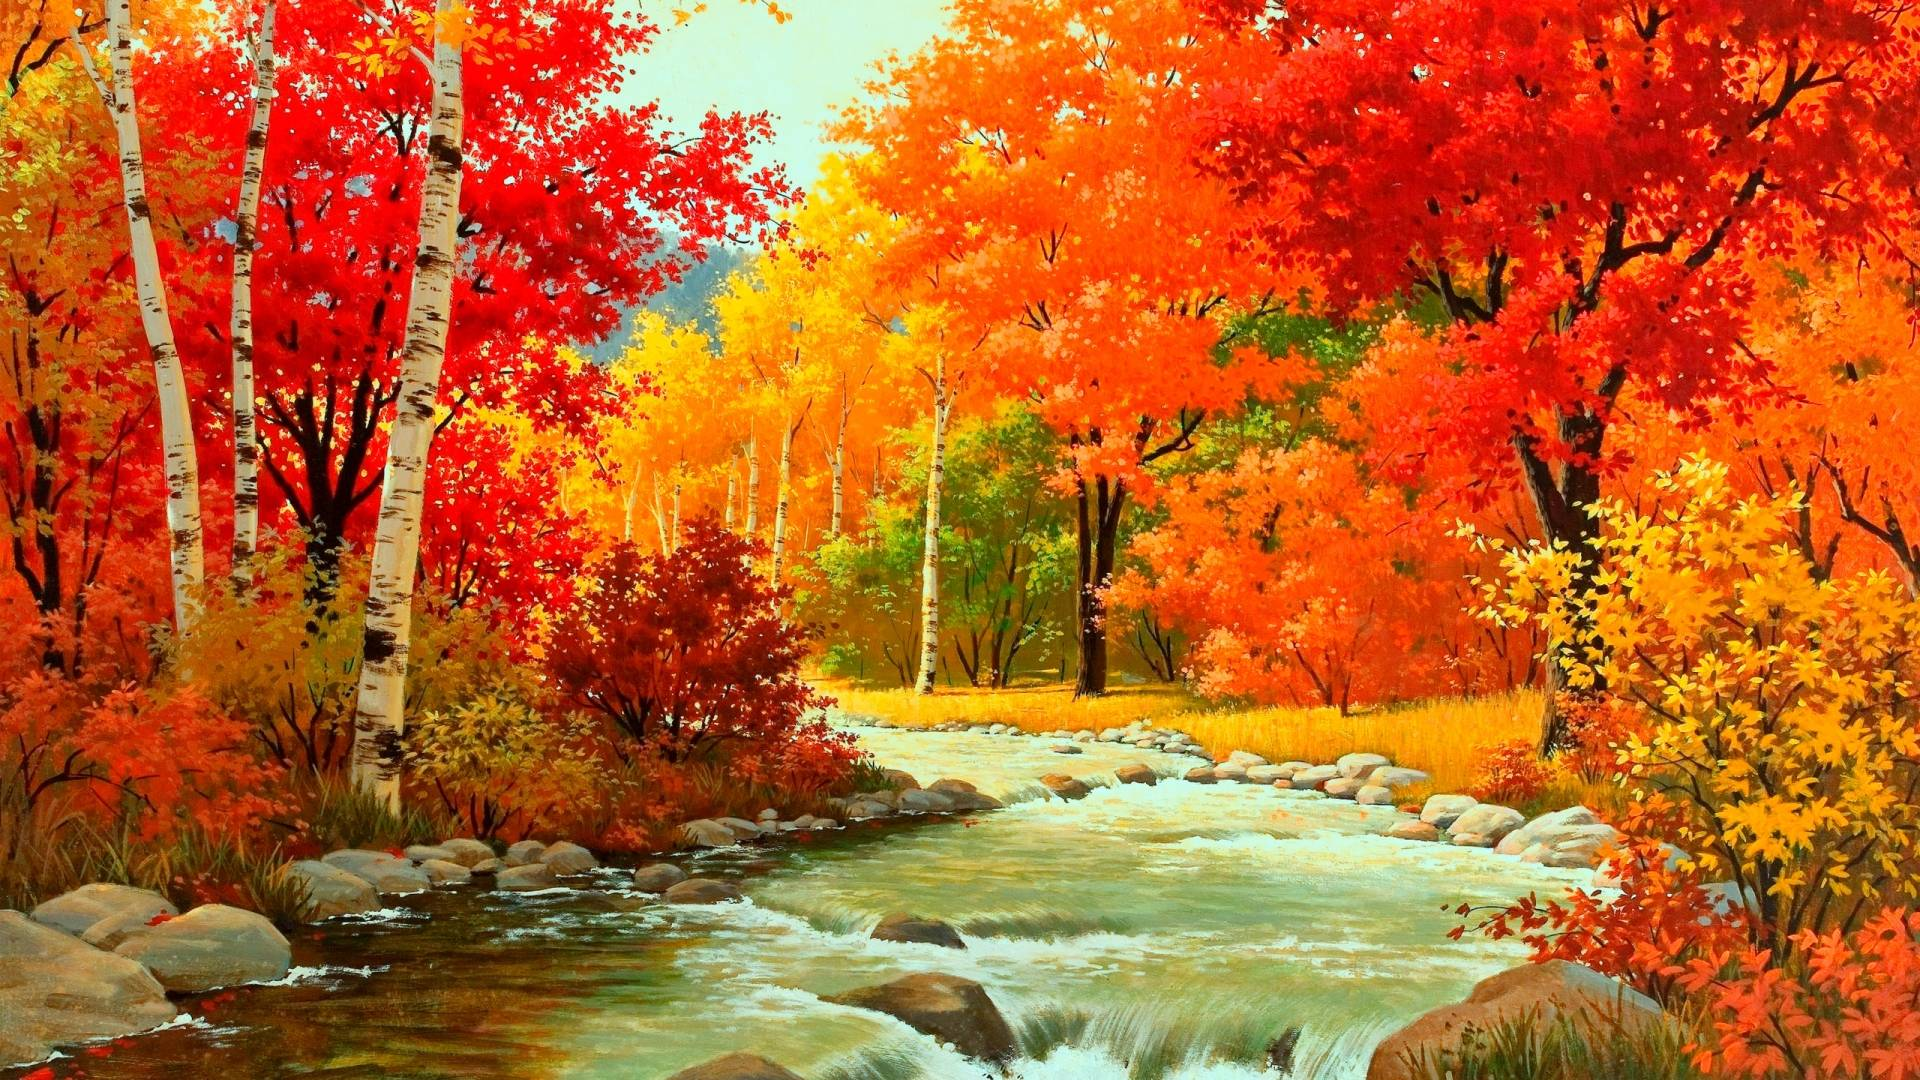 High Resolution Fall Wallpaper: HD Autumn Wallpapers